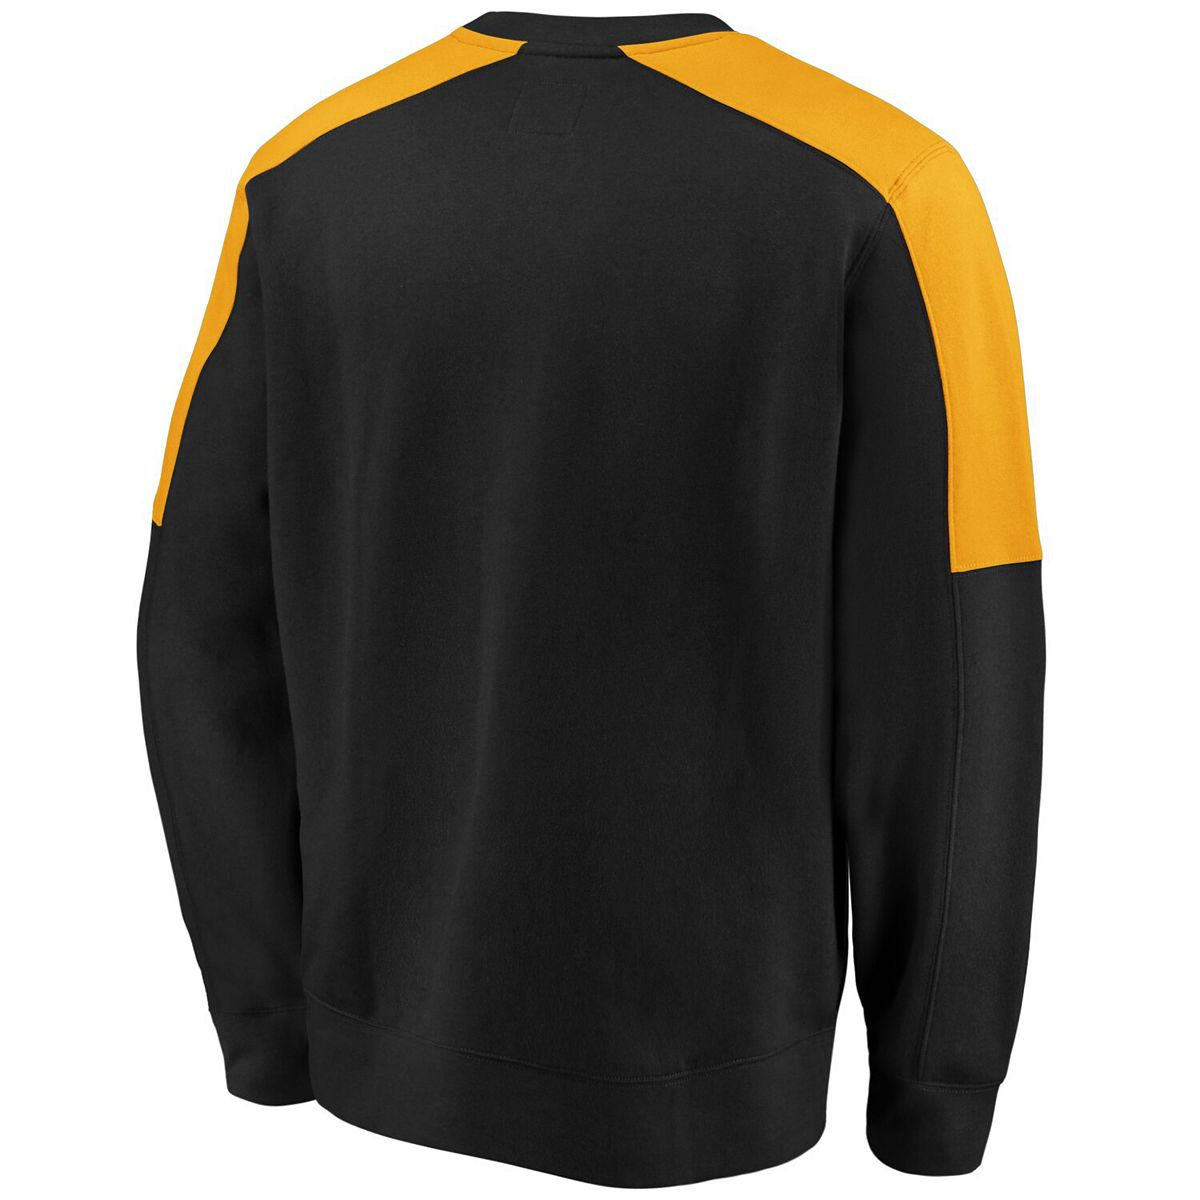 Men's Fanatics Branded Black/Gold Boston Bruins Iconic Crew Fleece Sweatshirt 3VQCx